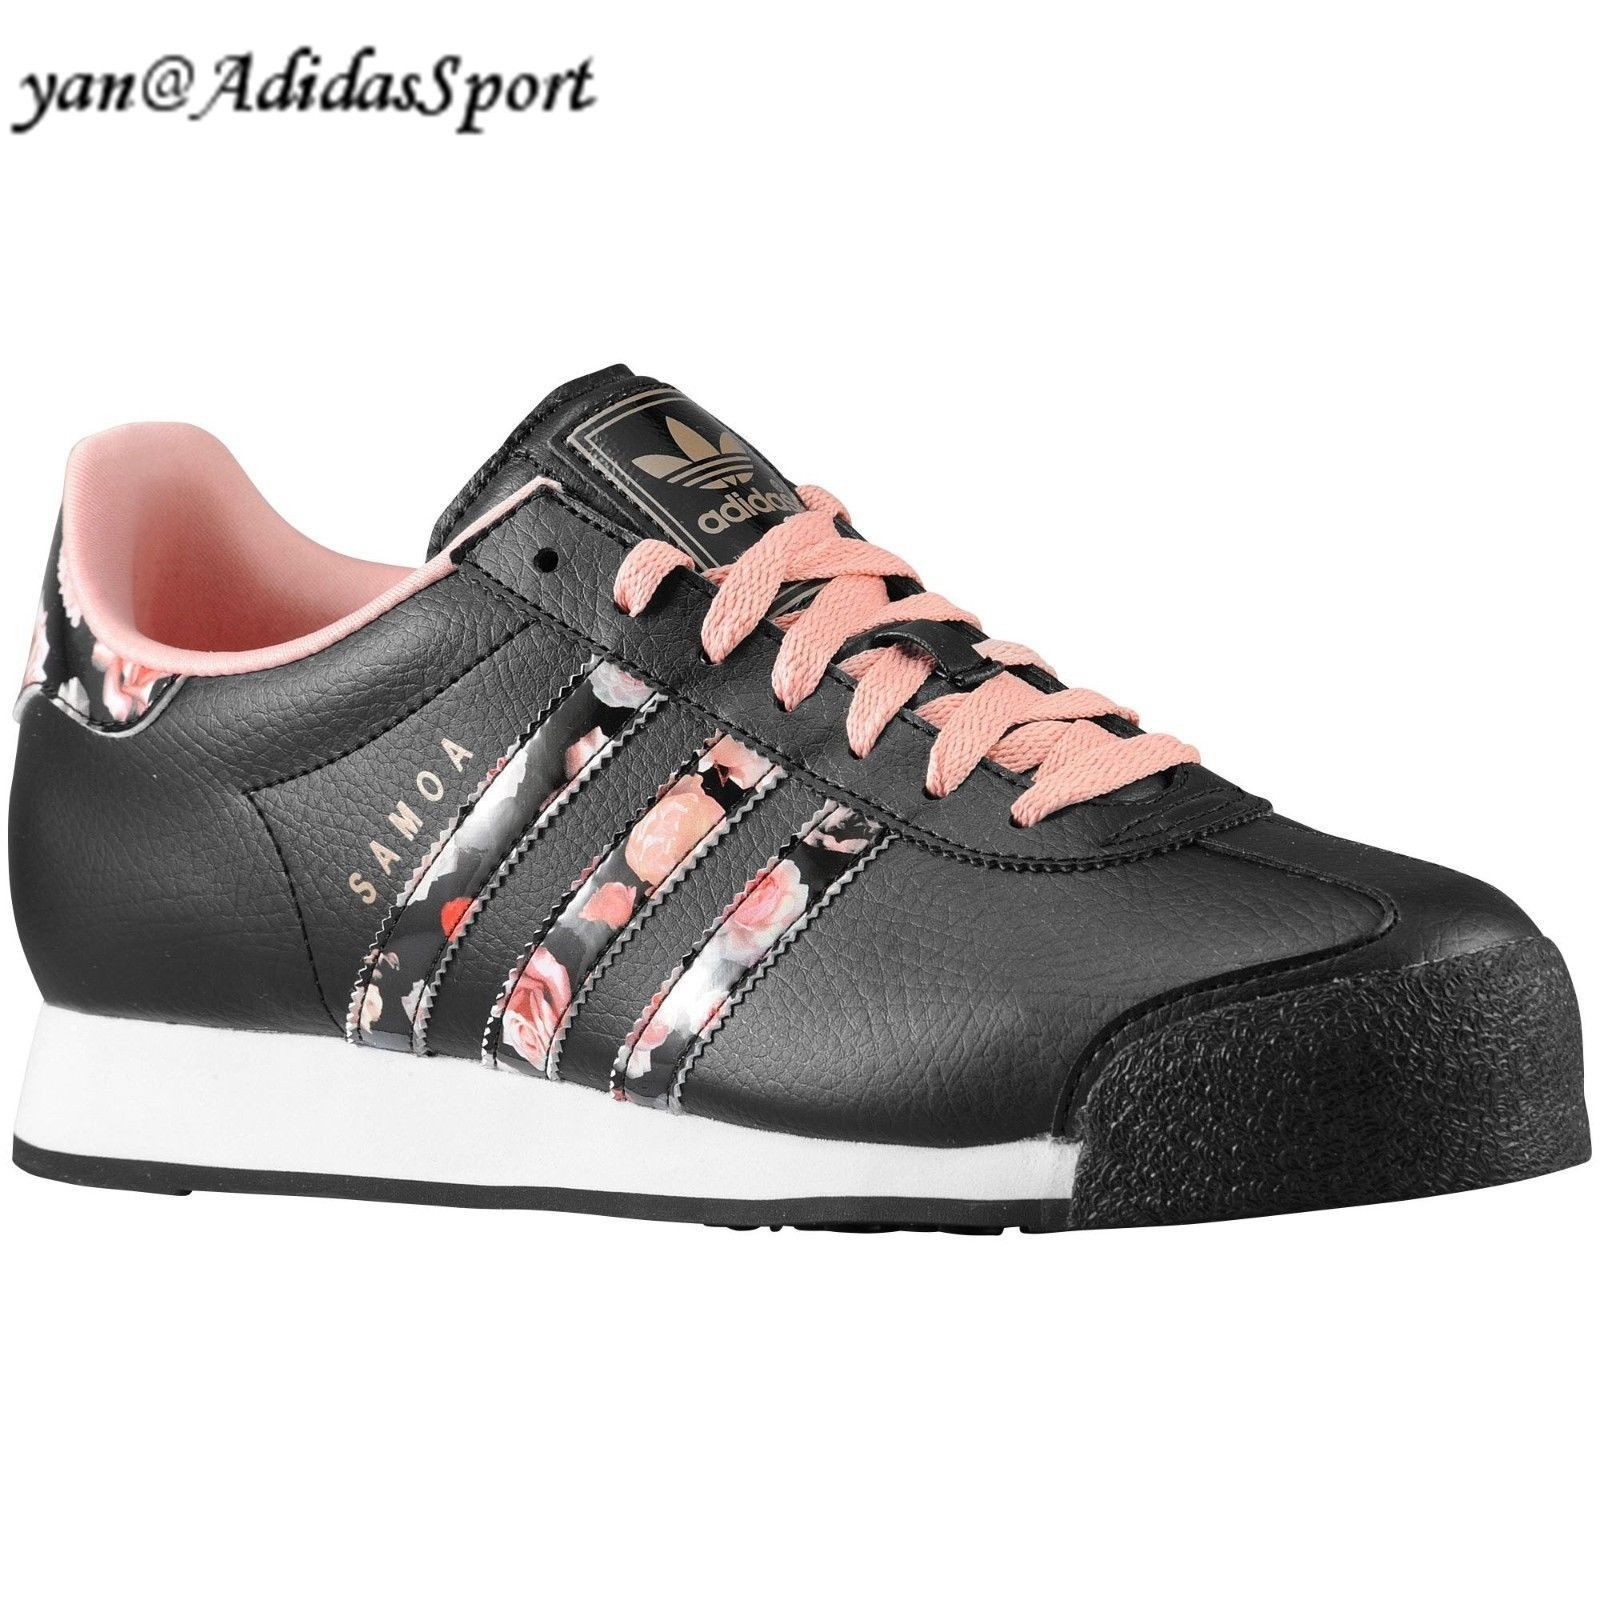 low priced 9fada d7b0e Encontrar Barato Adidas Originals Mujeres Samoa Flor Imprimir Retro  Zapatillas Negro Fundido Rose Blanco Comprar Madrid